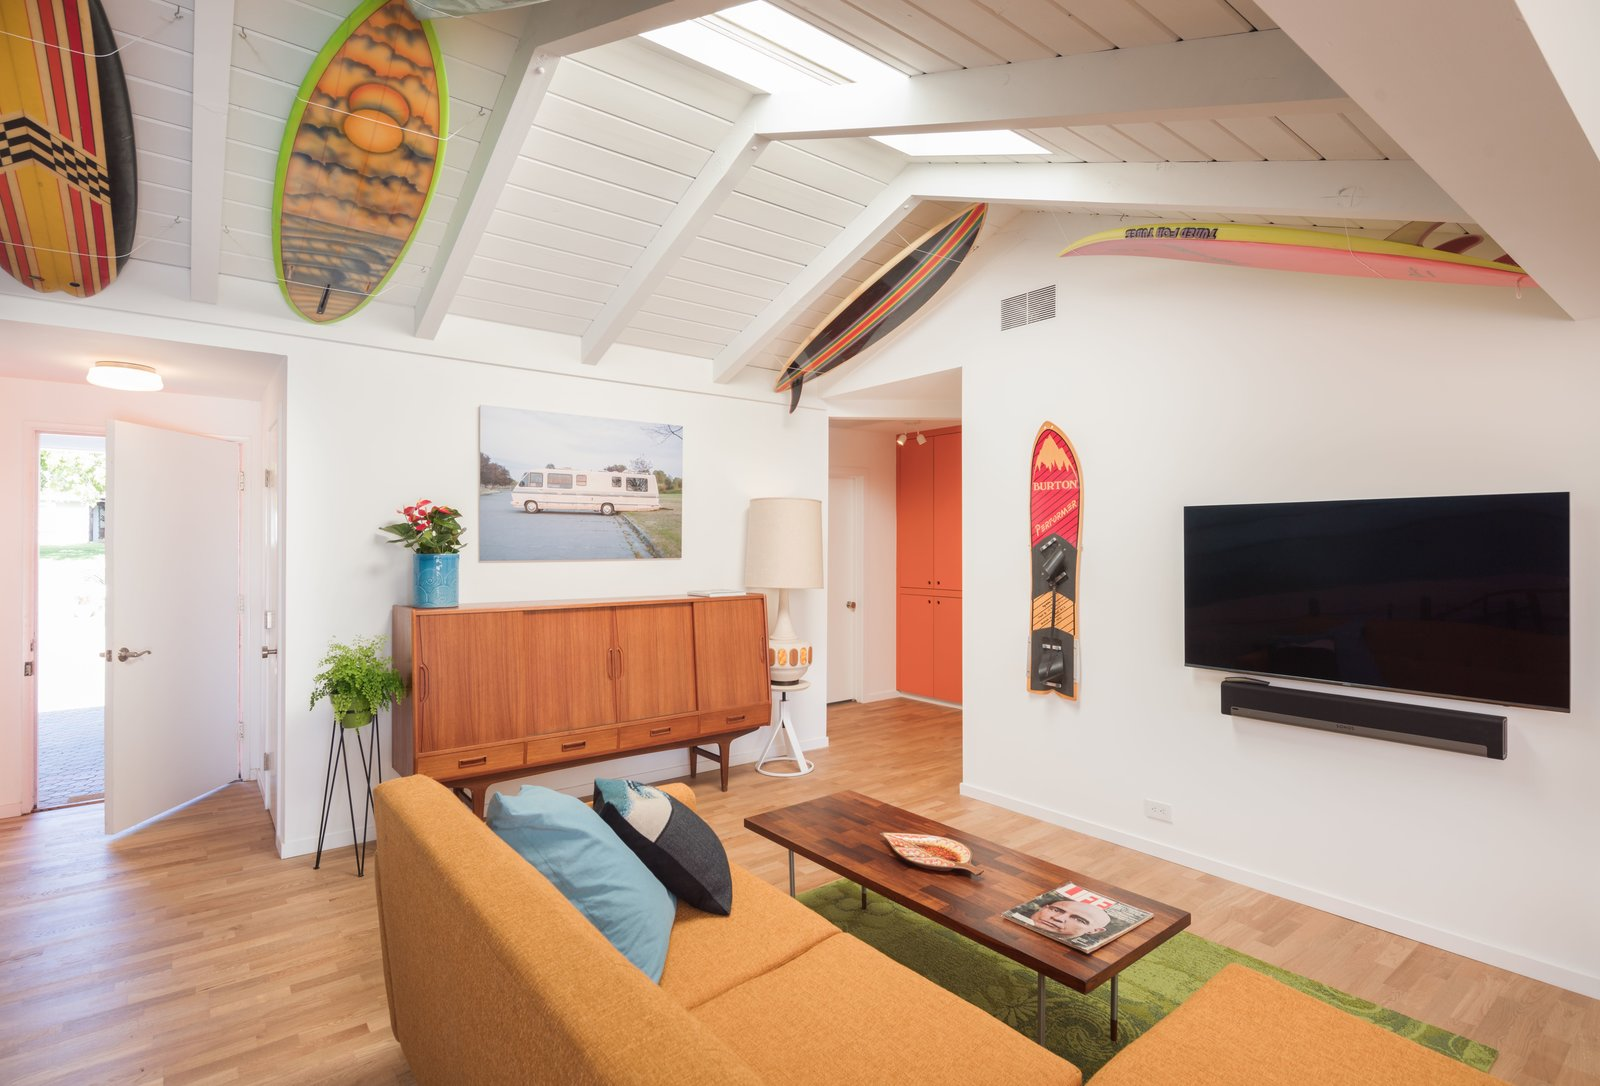 Exposed wood beams of the original home from 1957 + Vintage Burton Performer snowboard c. '84  The Beach Lab by Surfside Projects